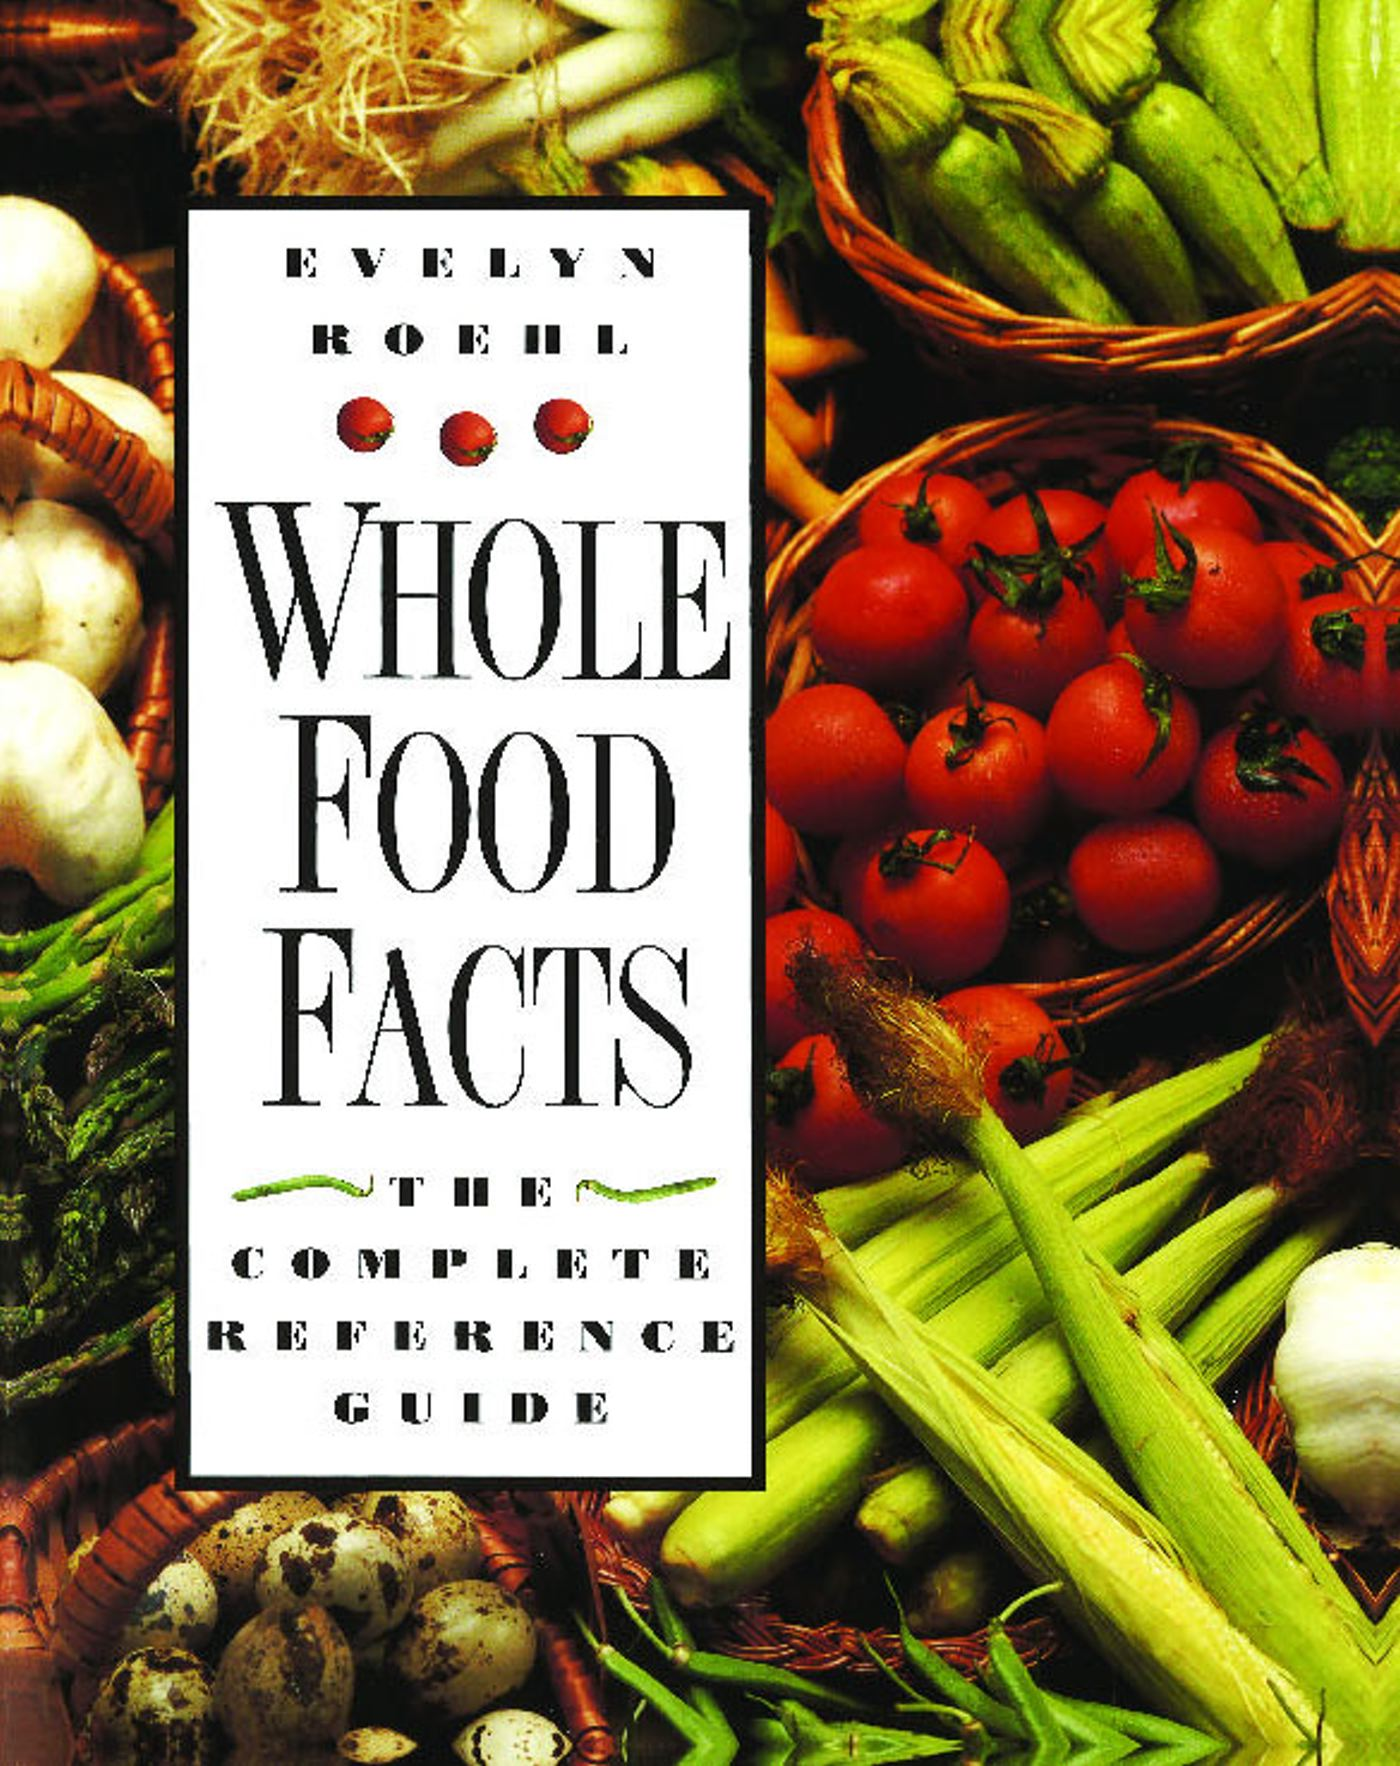 Whole food facts 9780892816354 hr